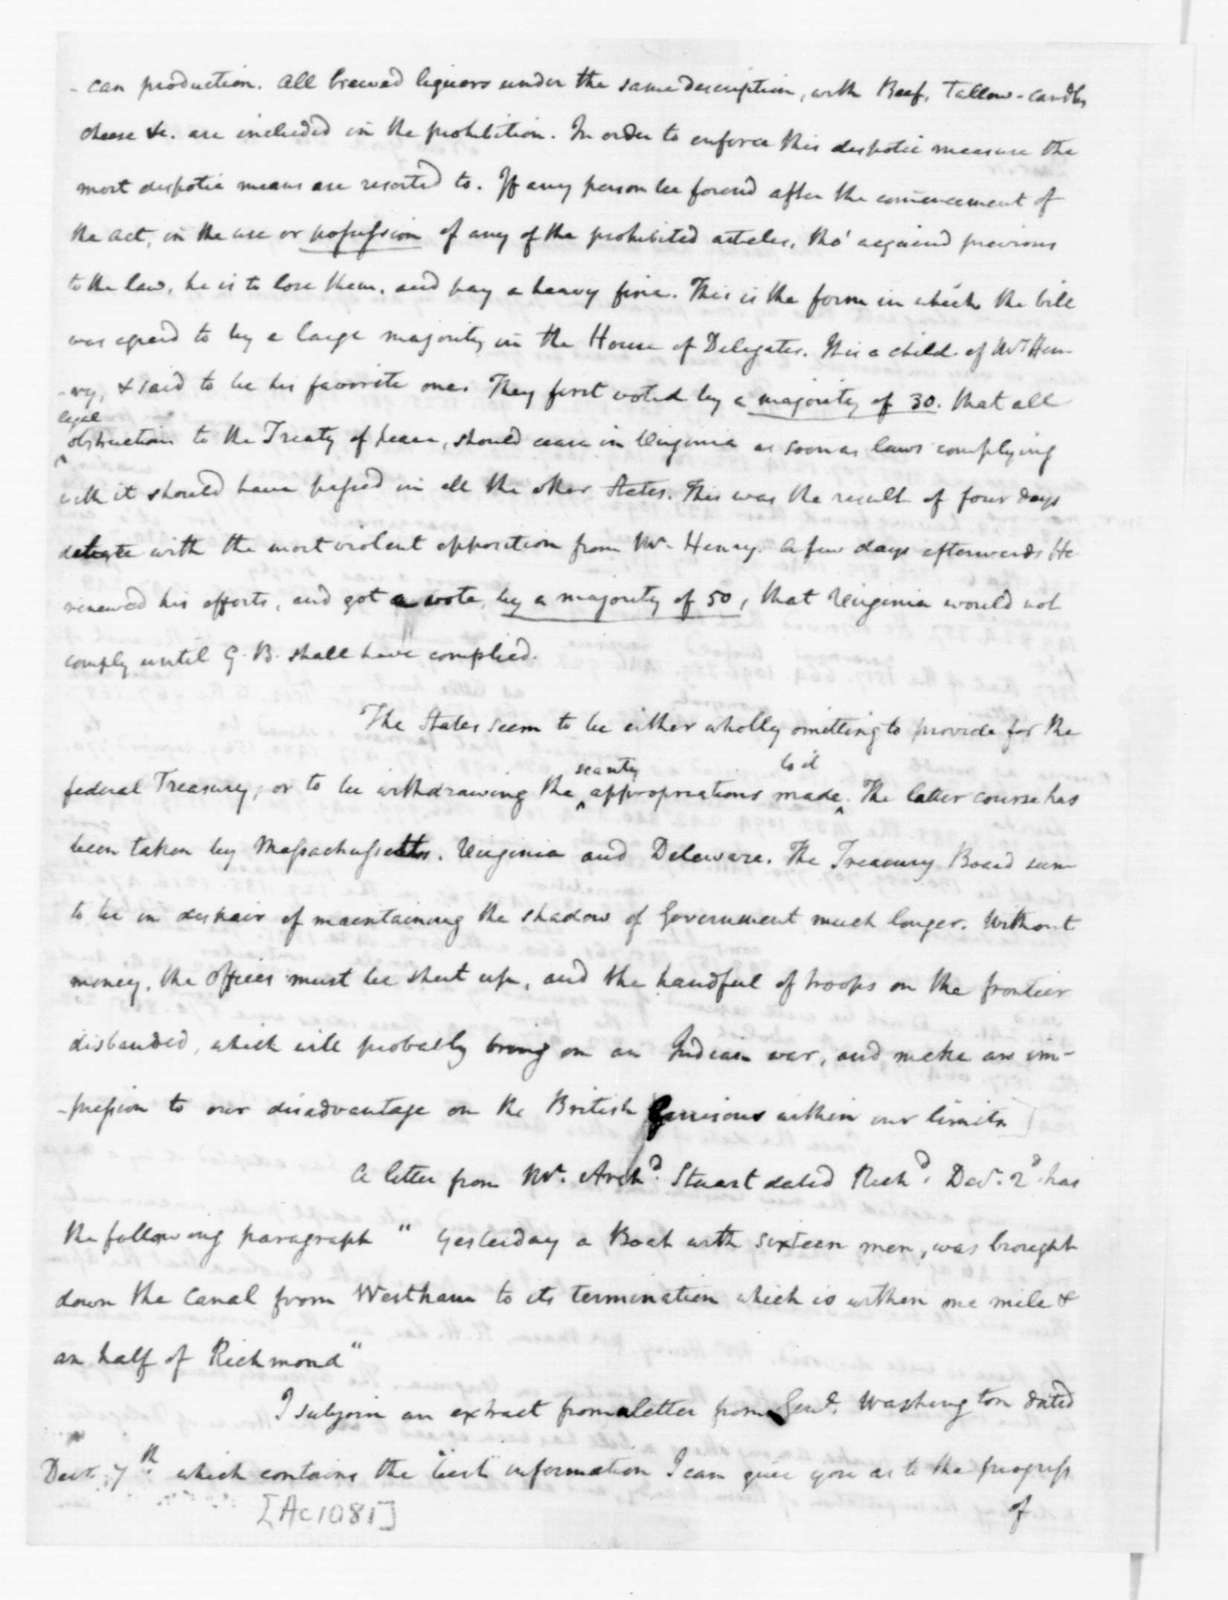 James Madison to Thomas Jefferson, December 20, 1787. Partly in Cipher.